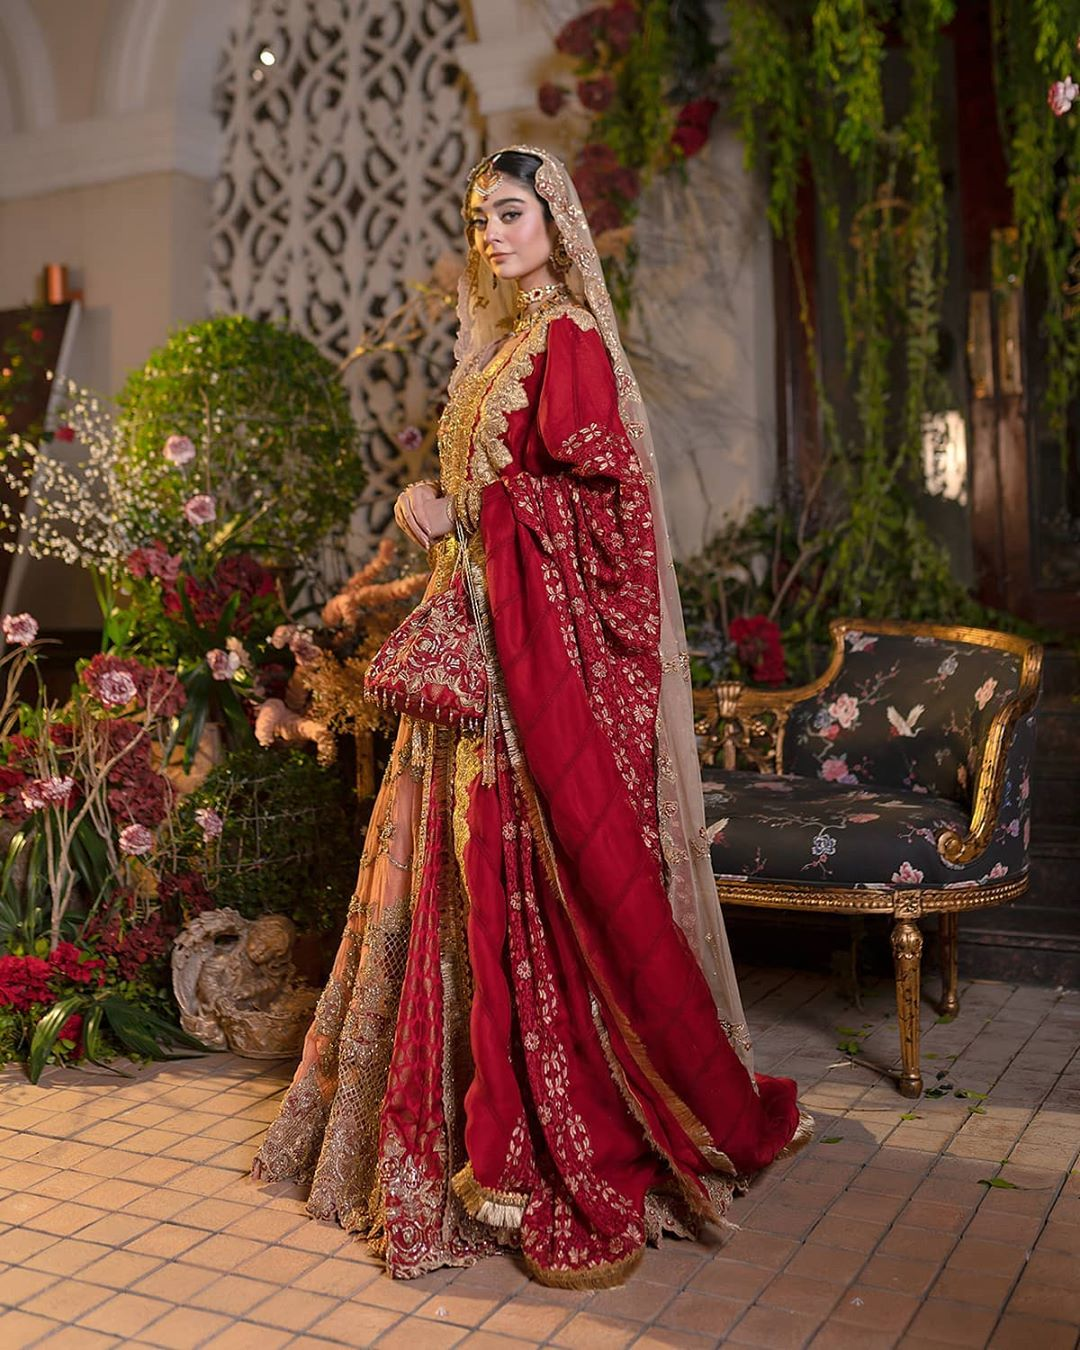 Noor Khan In Modern Royal Dresses By Ammar Khan 27